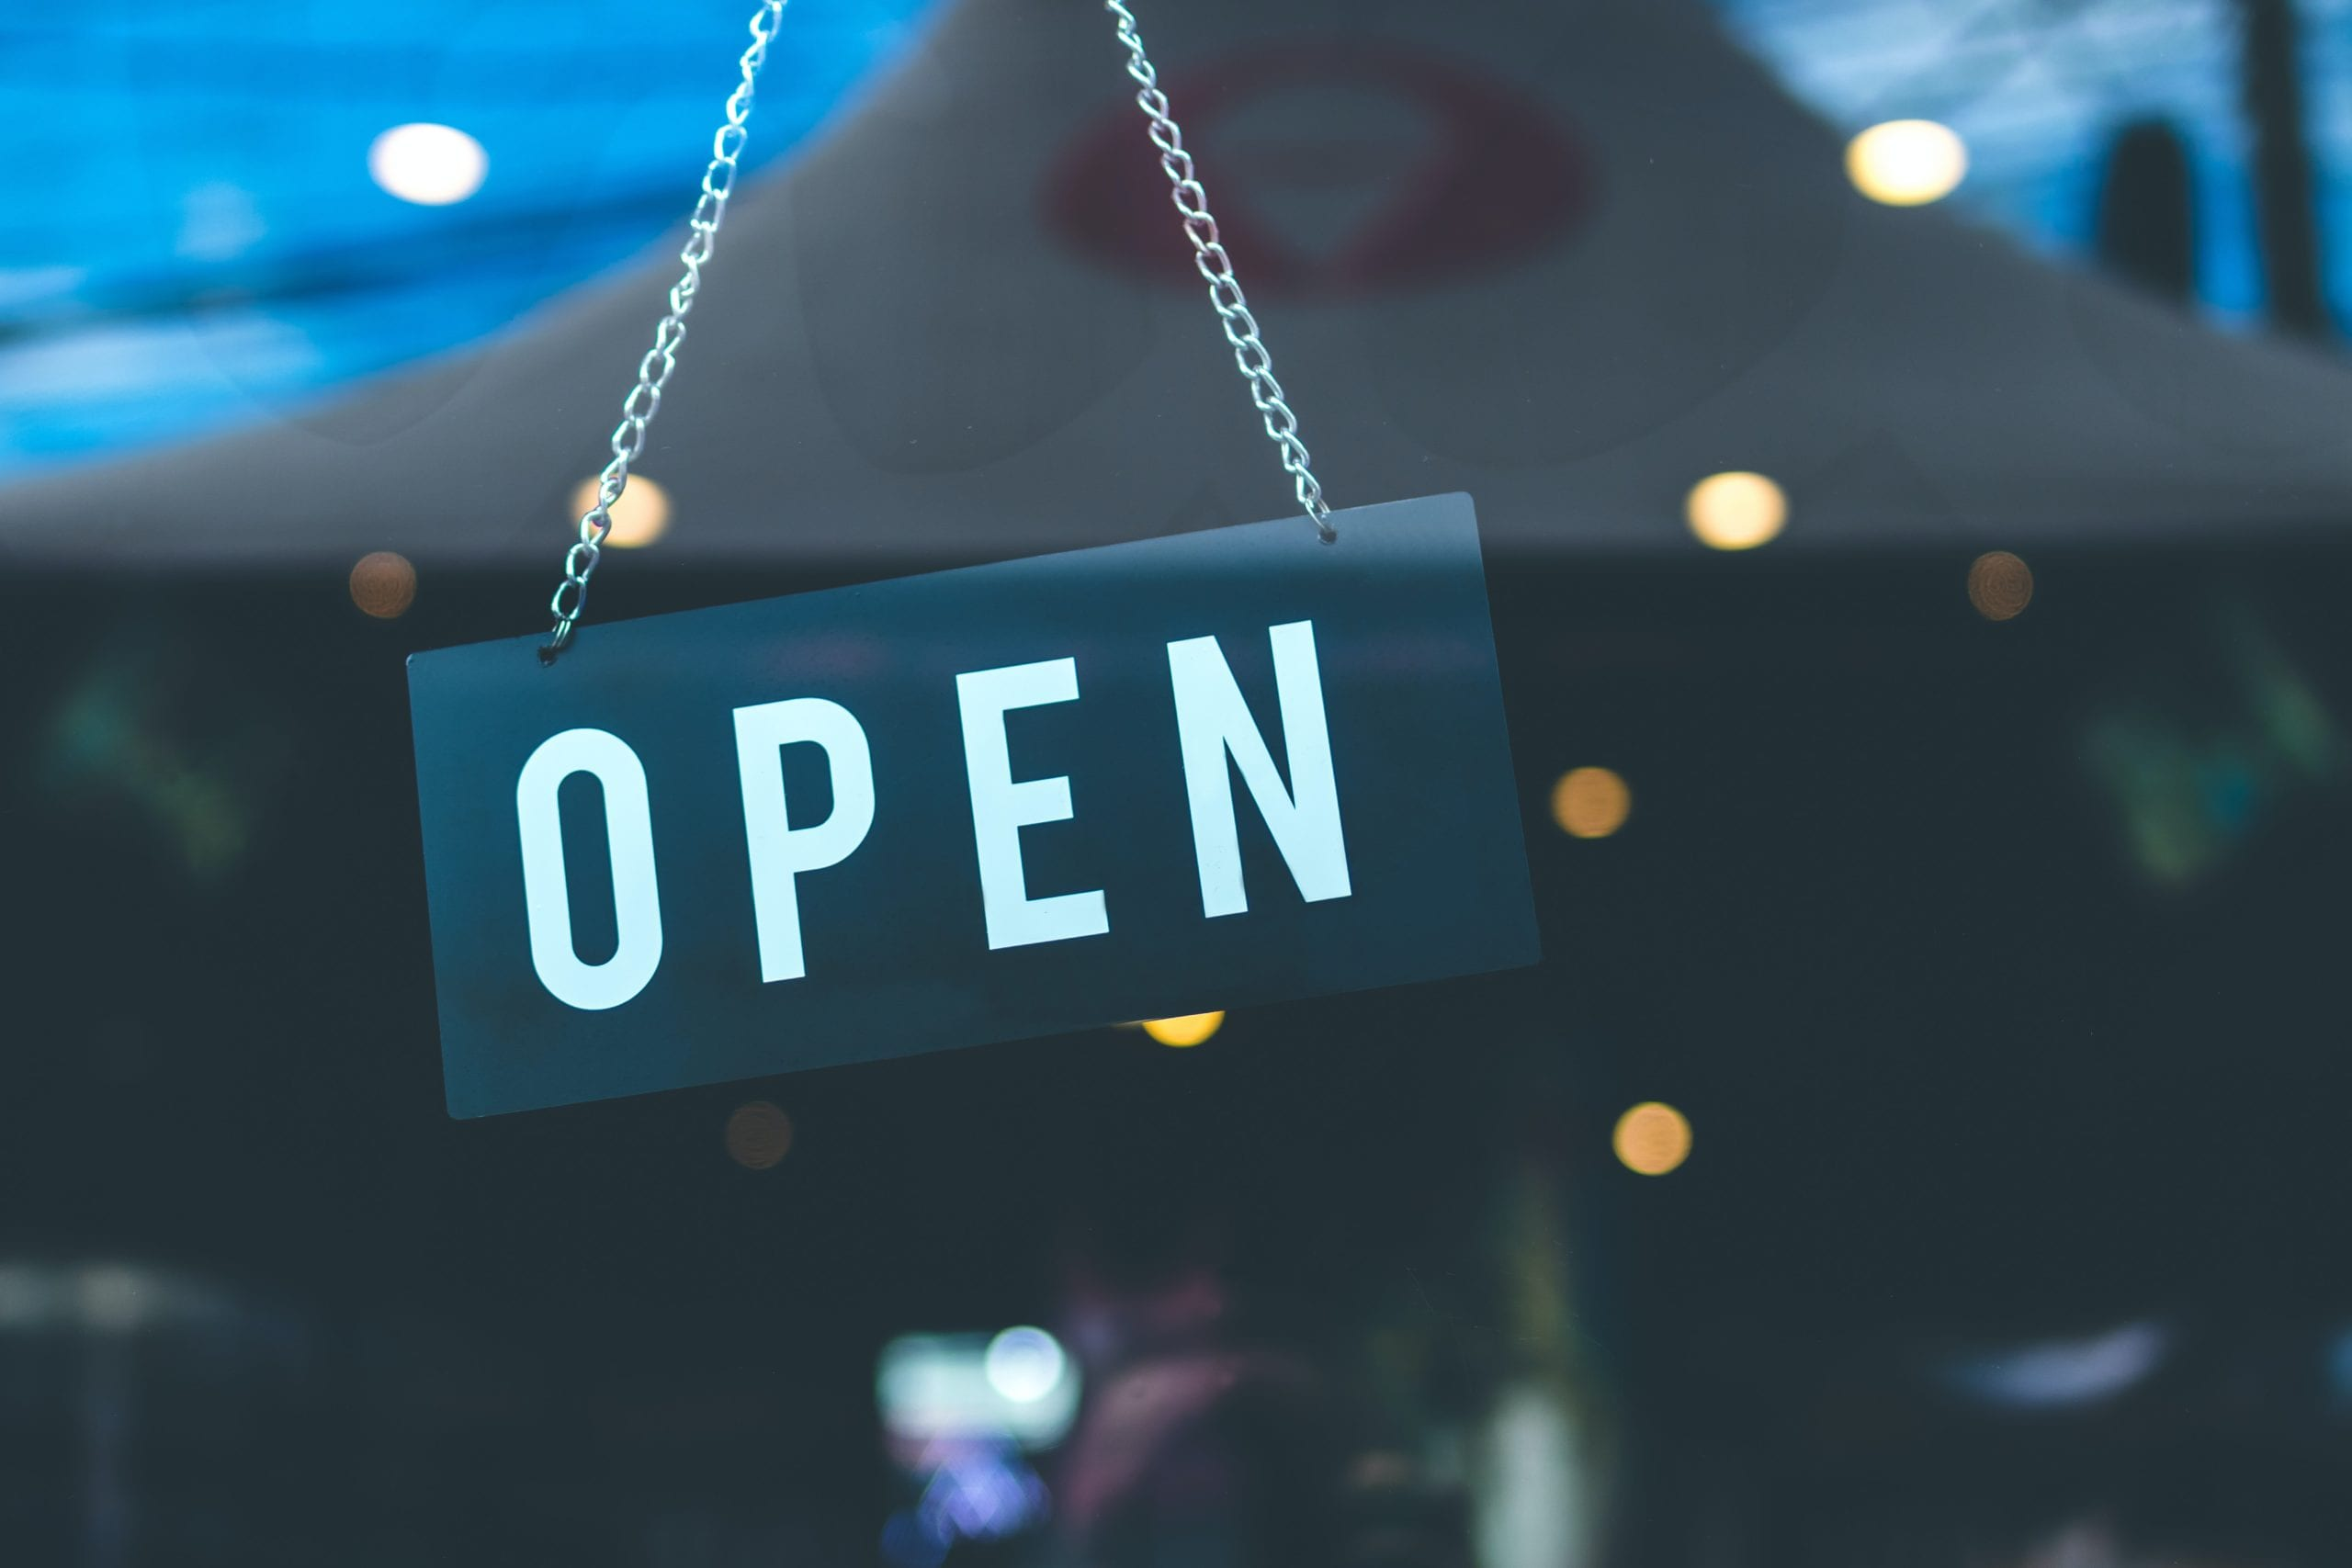 Open sign on retail store